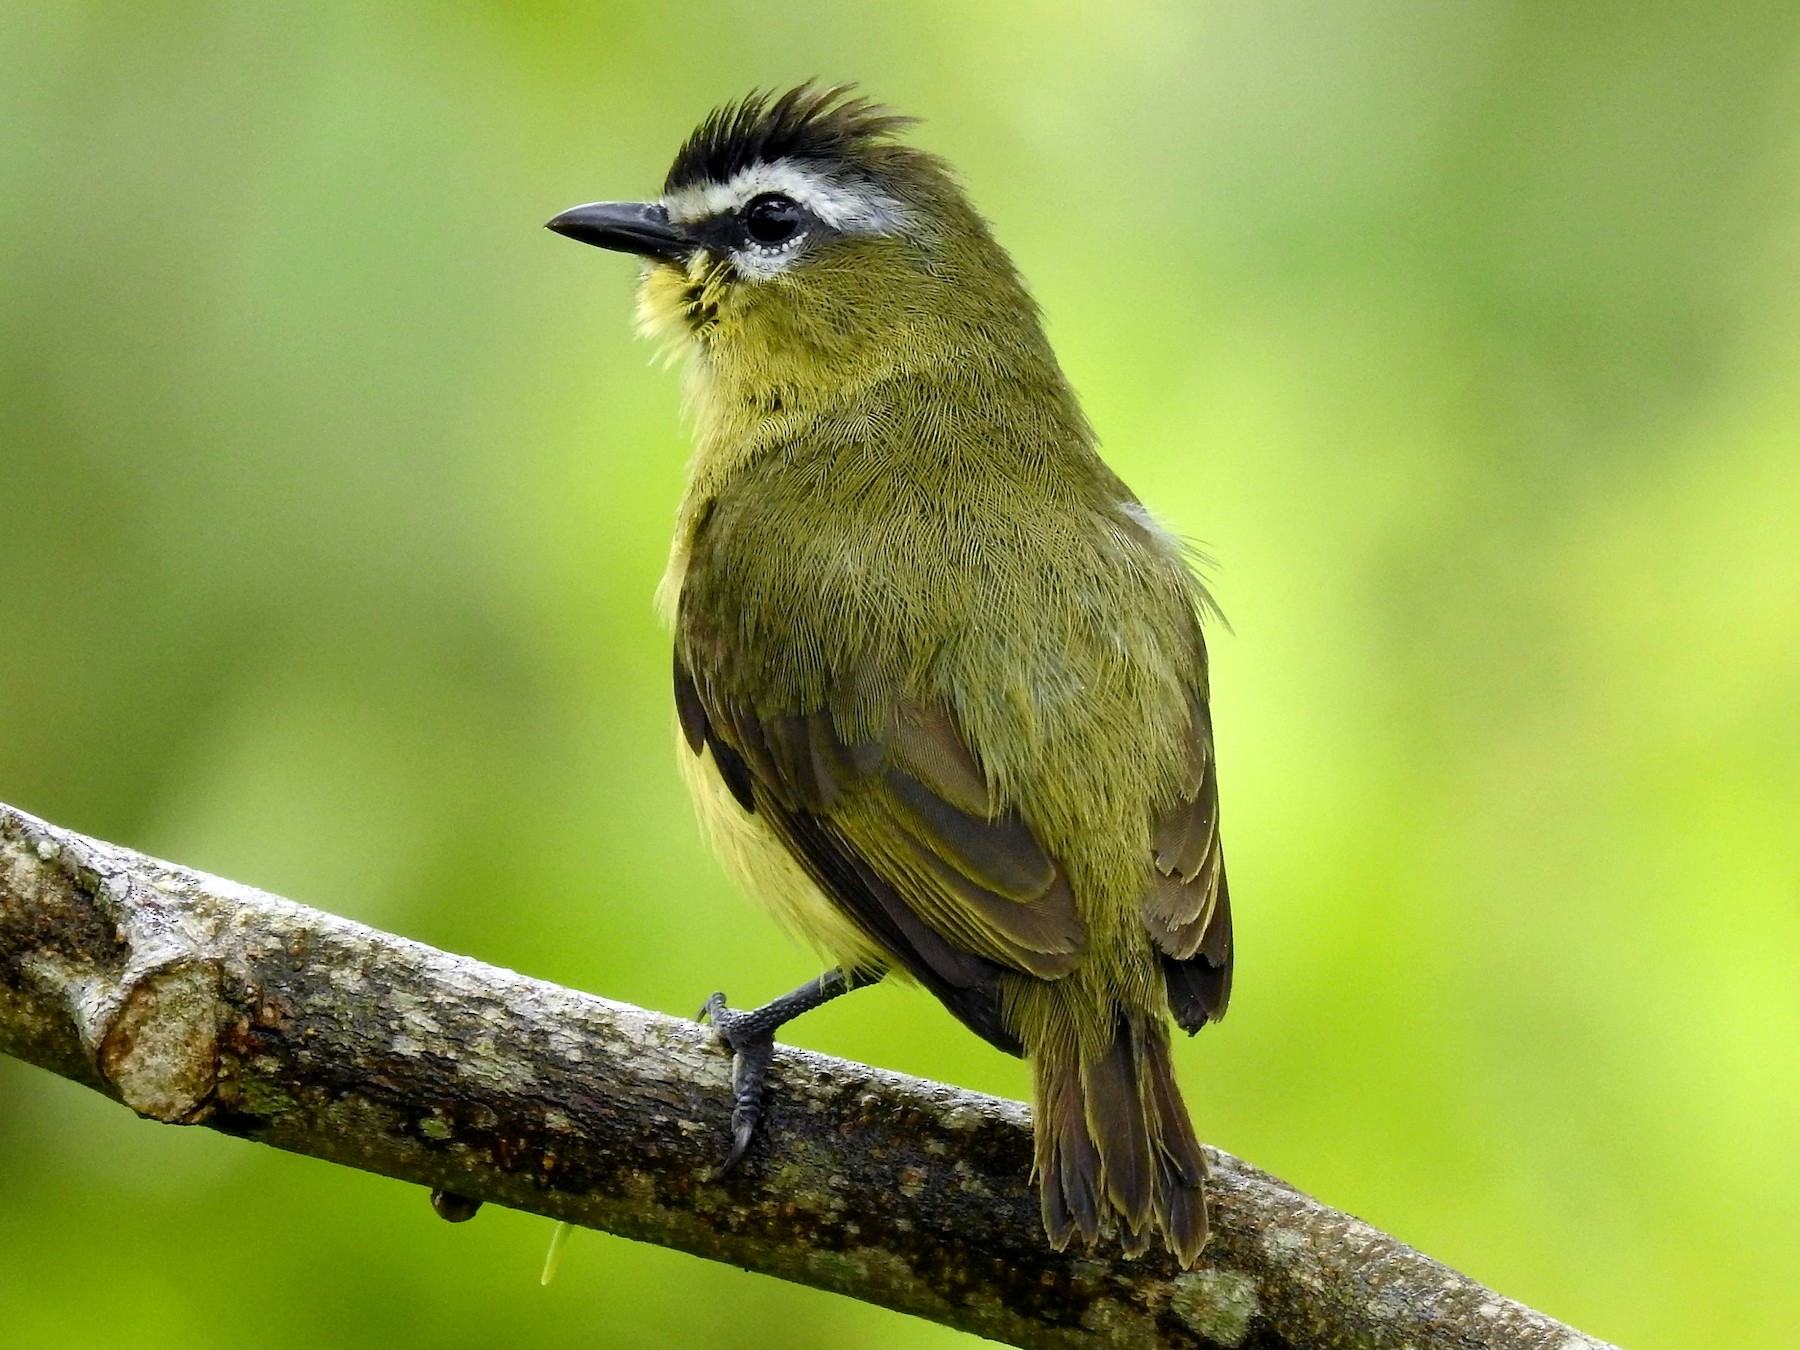 Brown-capped Tyrannulet - Marcelo Quipo